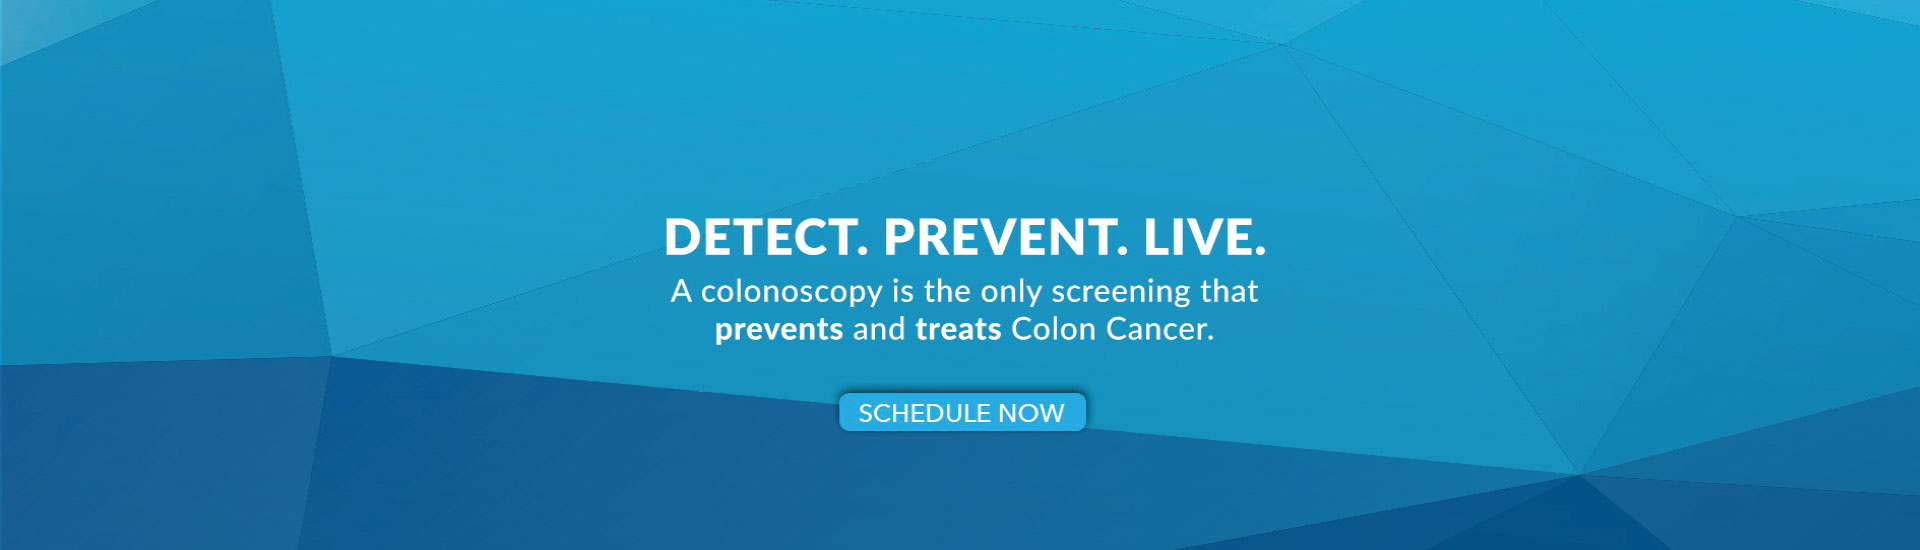 Detect. Prevent. Live. A Colonoscopy is the Only Screening that Prevents and Treats Colon Cancer.